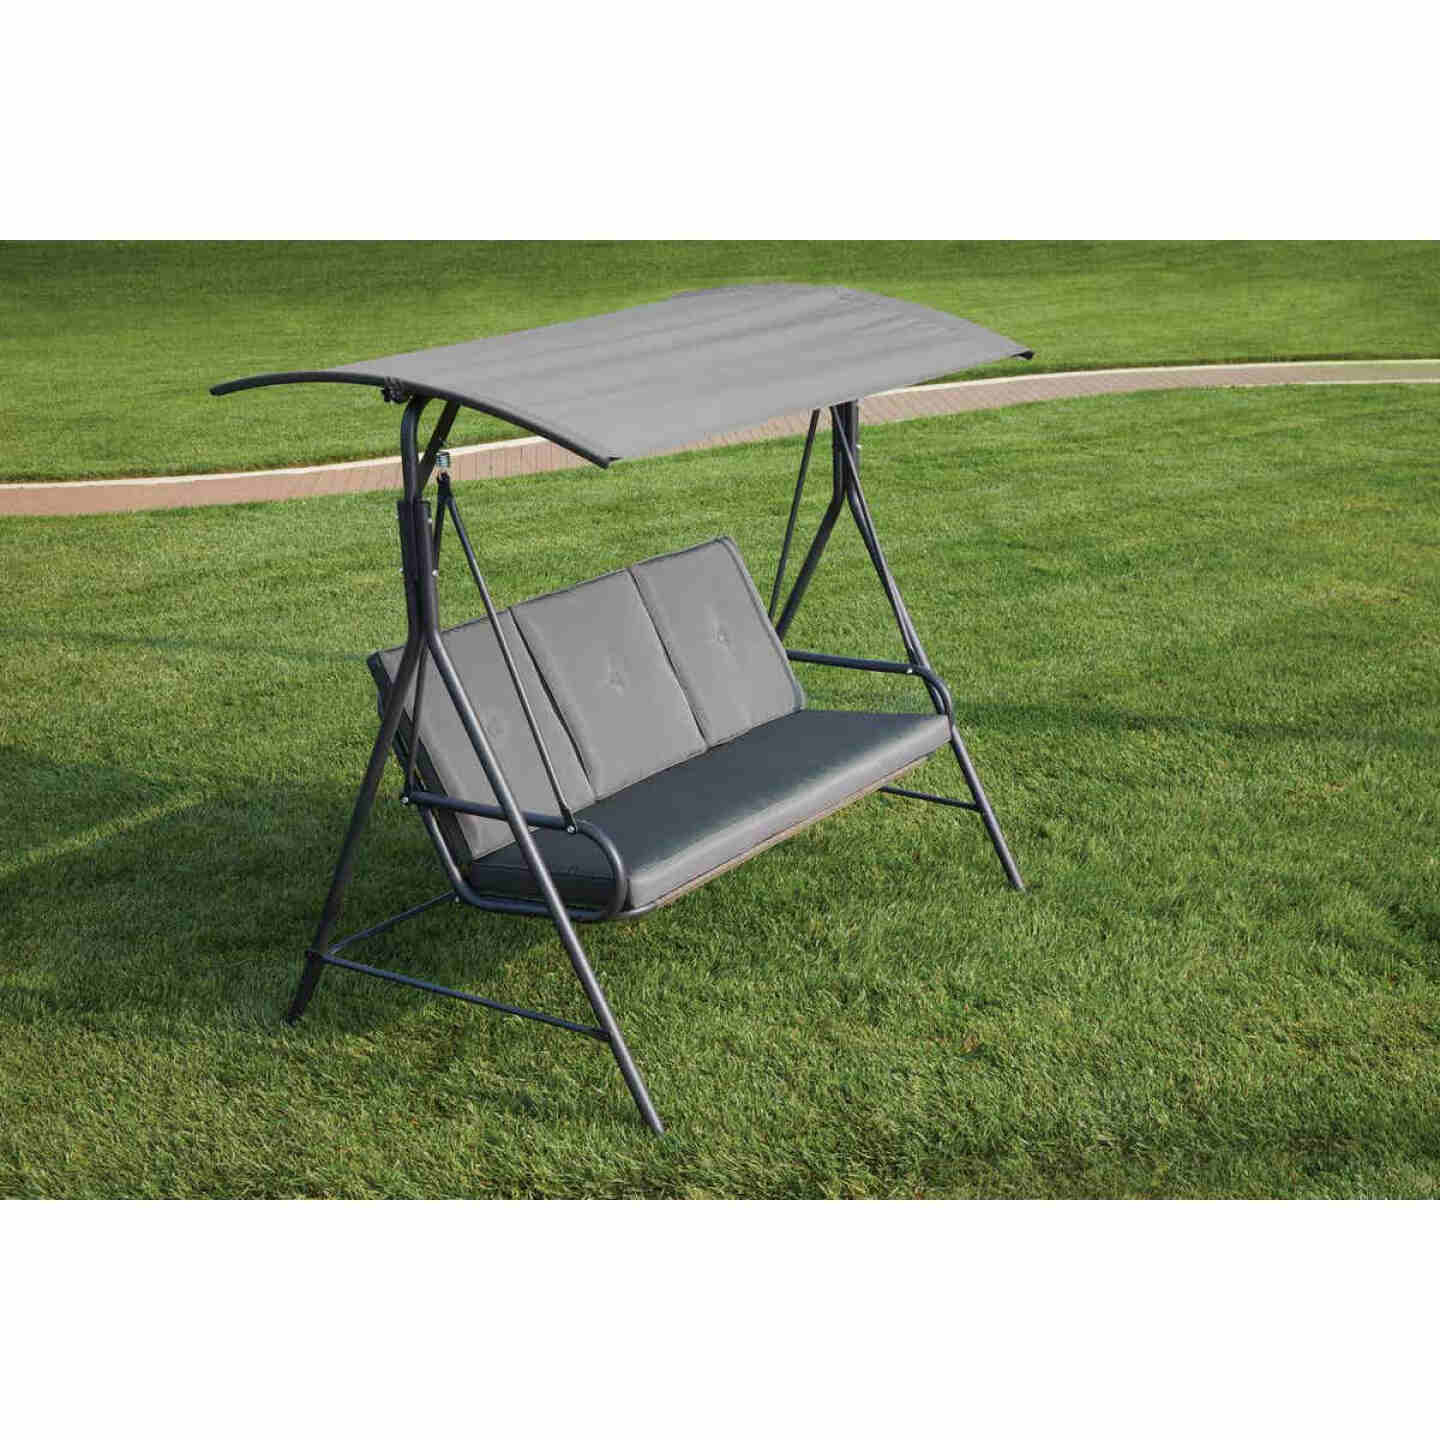 Outdoor Expressions 3-Person 71.65 In. W. x 66.93 In. H. x 49.21 In. D. Gray Patio Swing Image 5